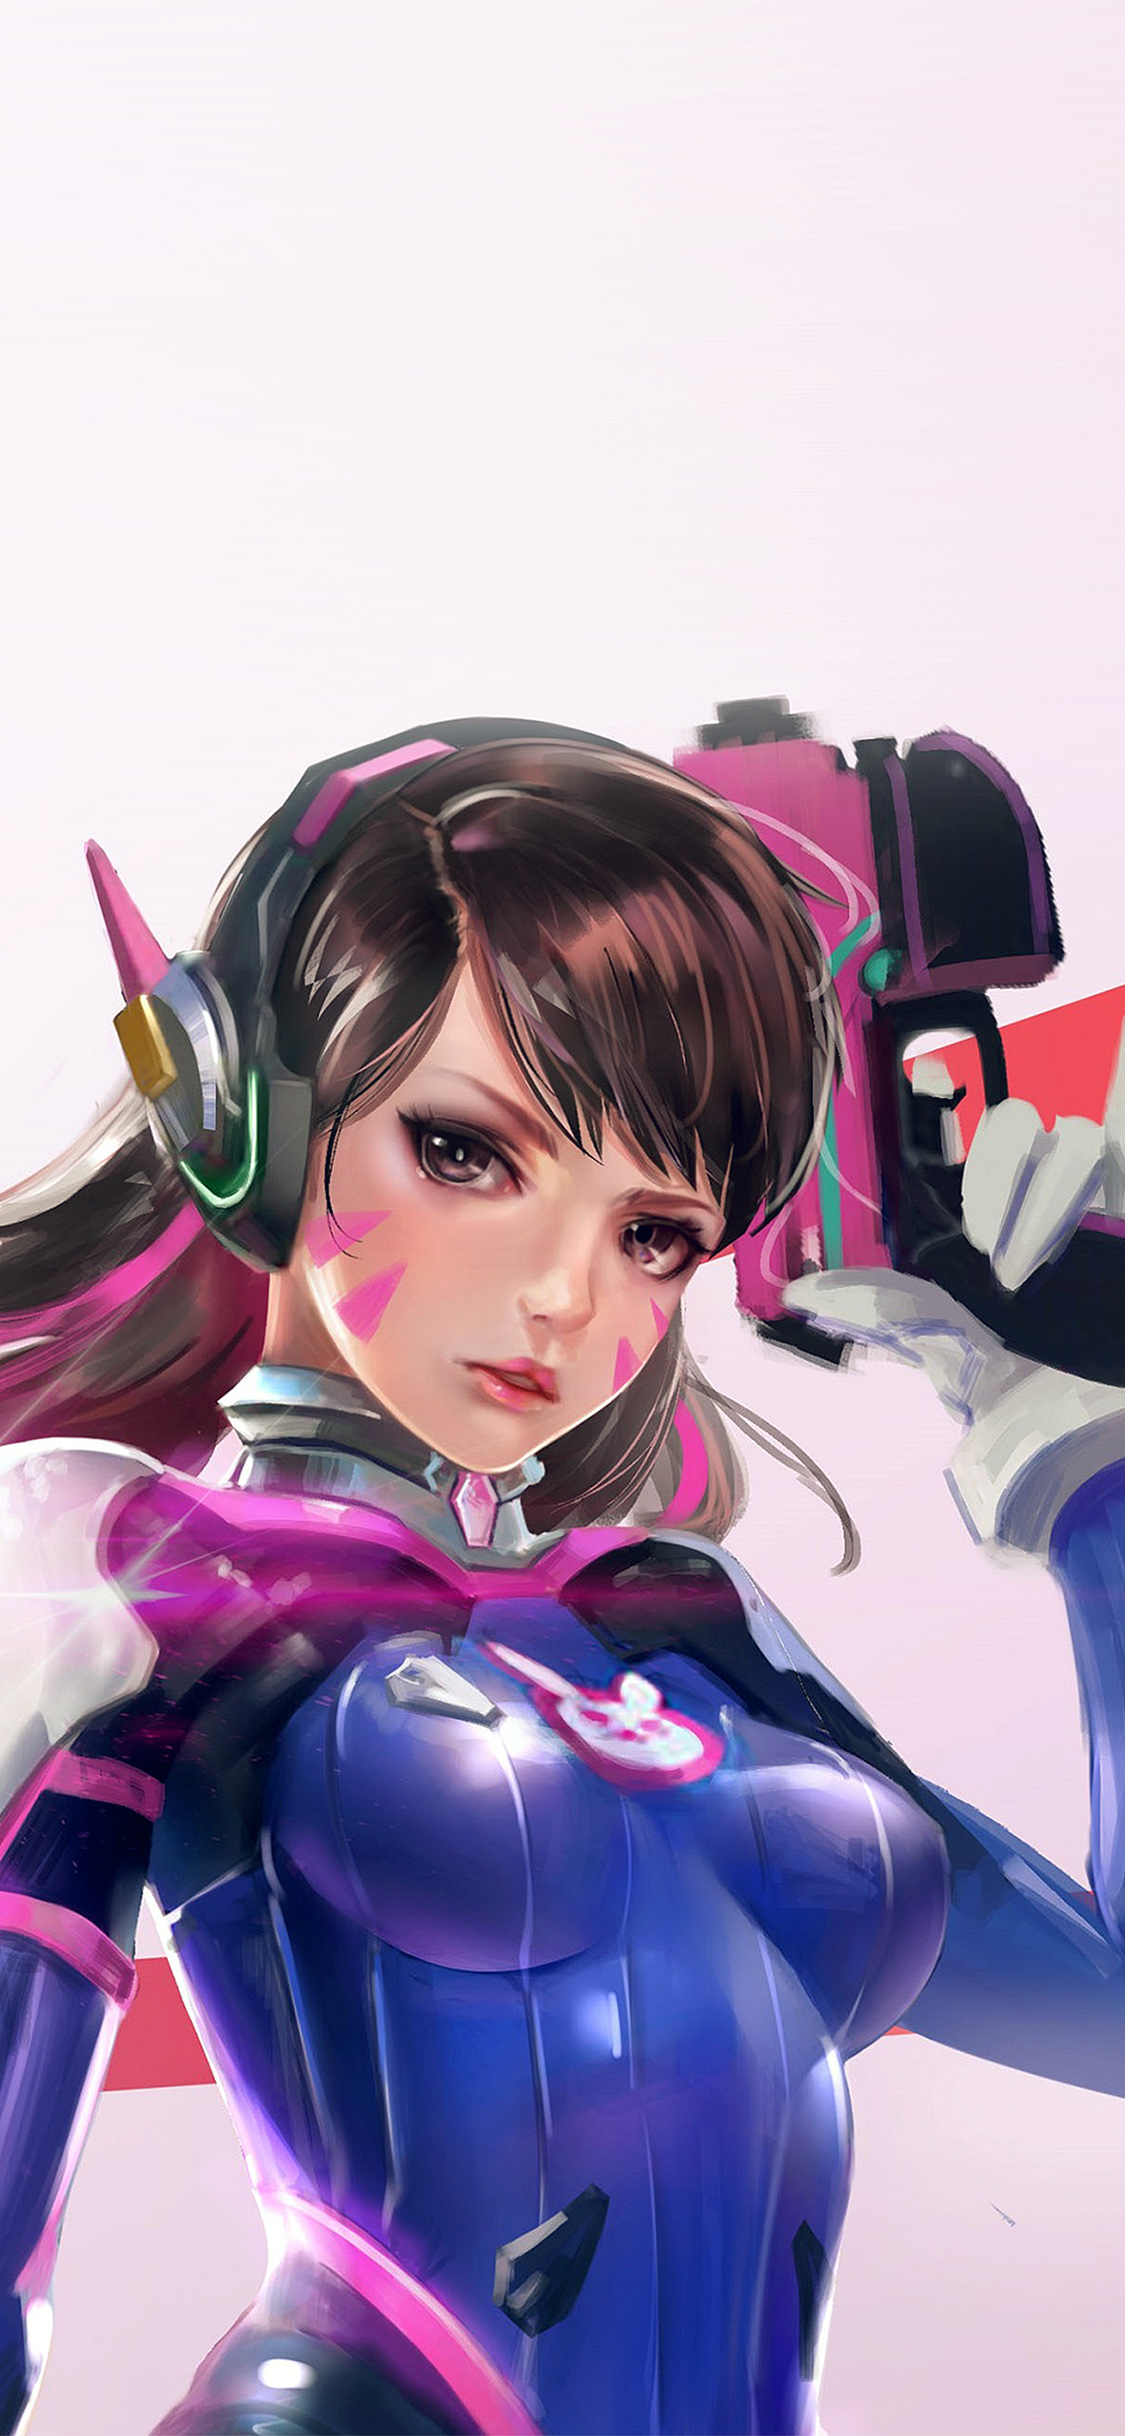 iPhoneXpapers.com-Apple-iPhone-wallpaper-as00-overwatch-diva-cute-game-art-illustration